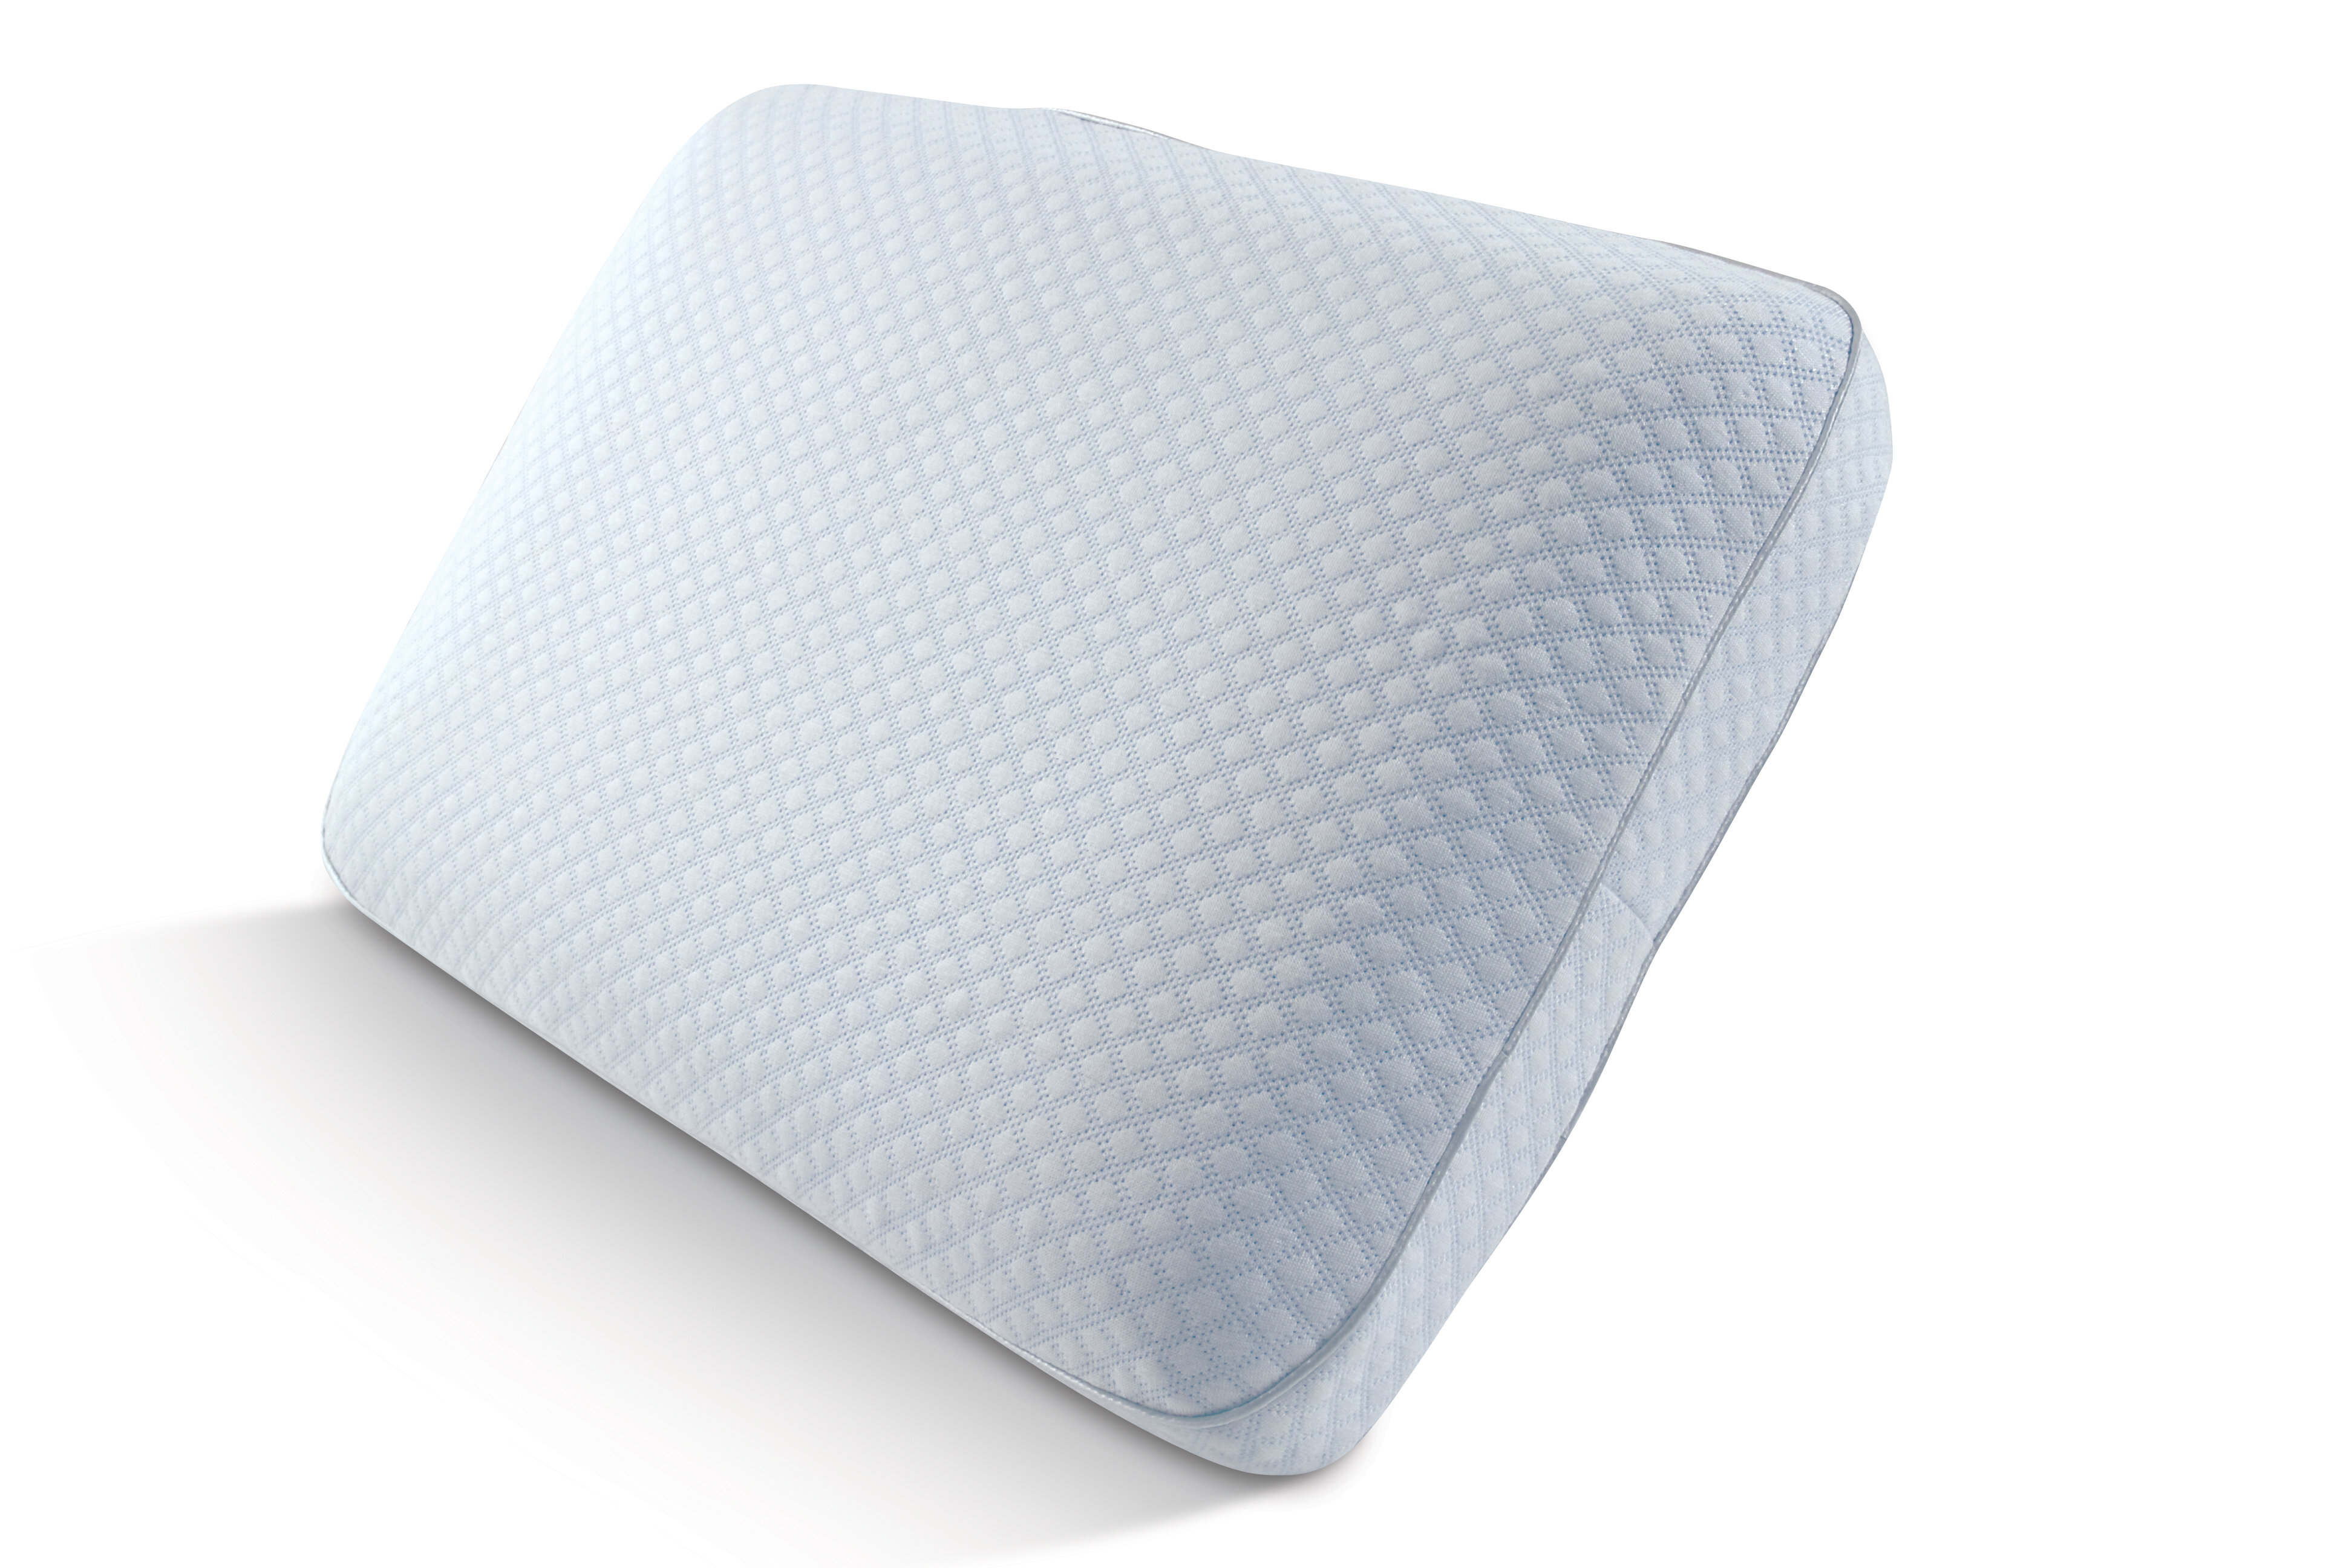 ventilated dream pillows contour therapy foam pillow gallery comfort or pack of authentic cushion memory therapeutic cannon